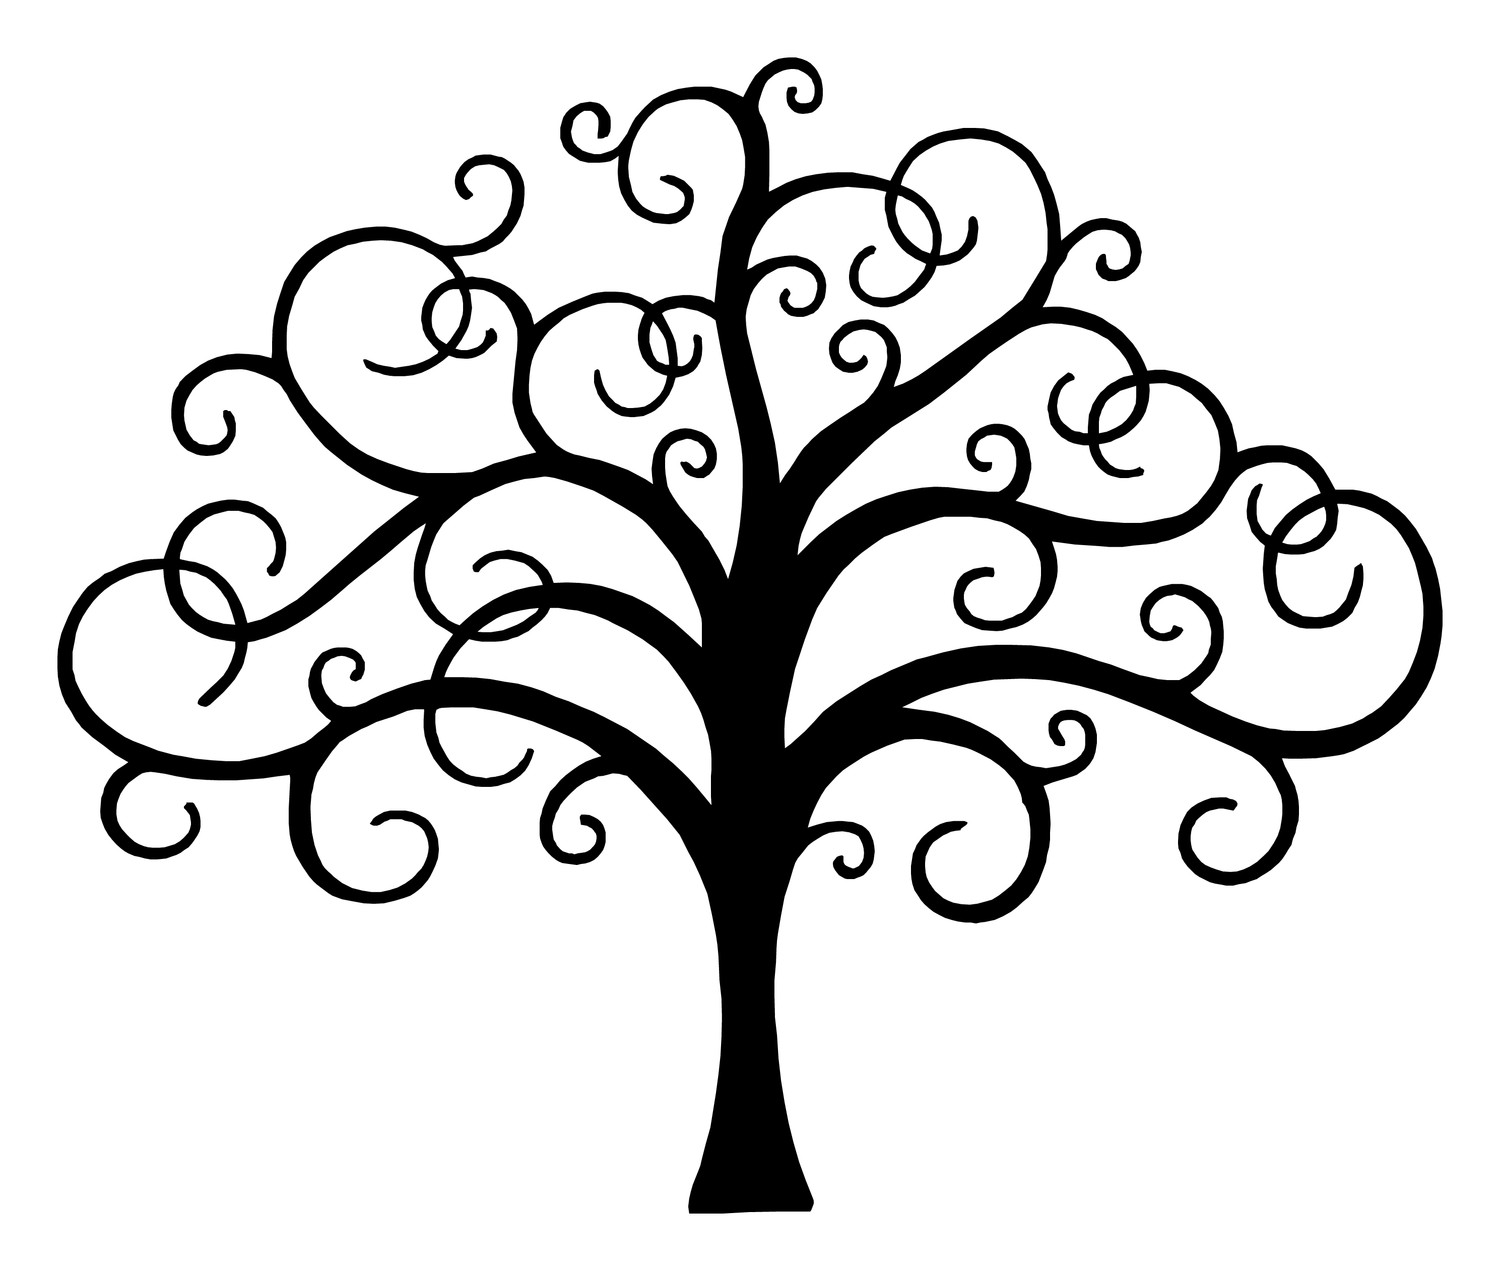 Tree Line Art Design : The tree of life drawing clipart best